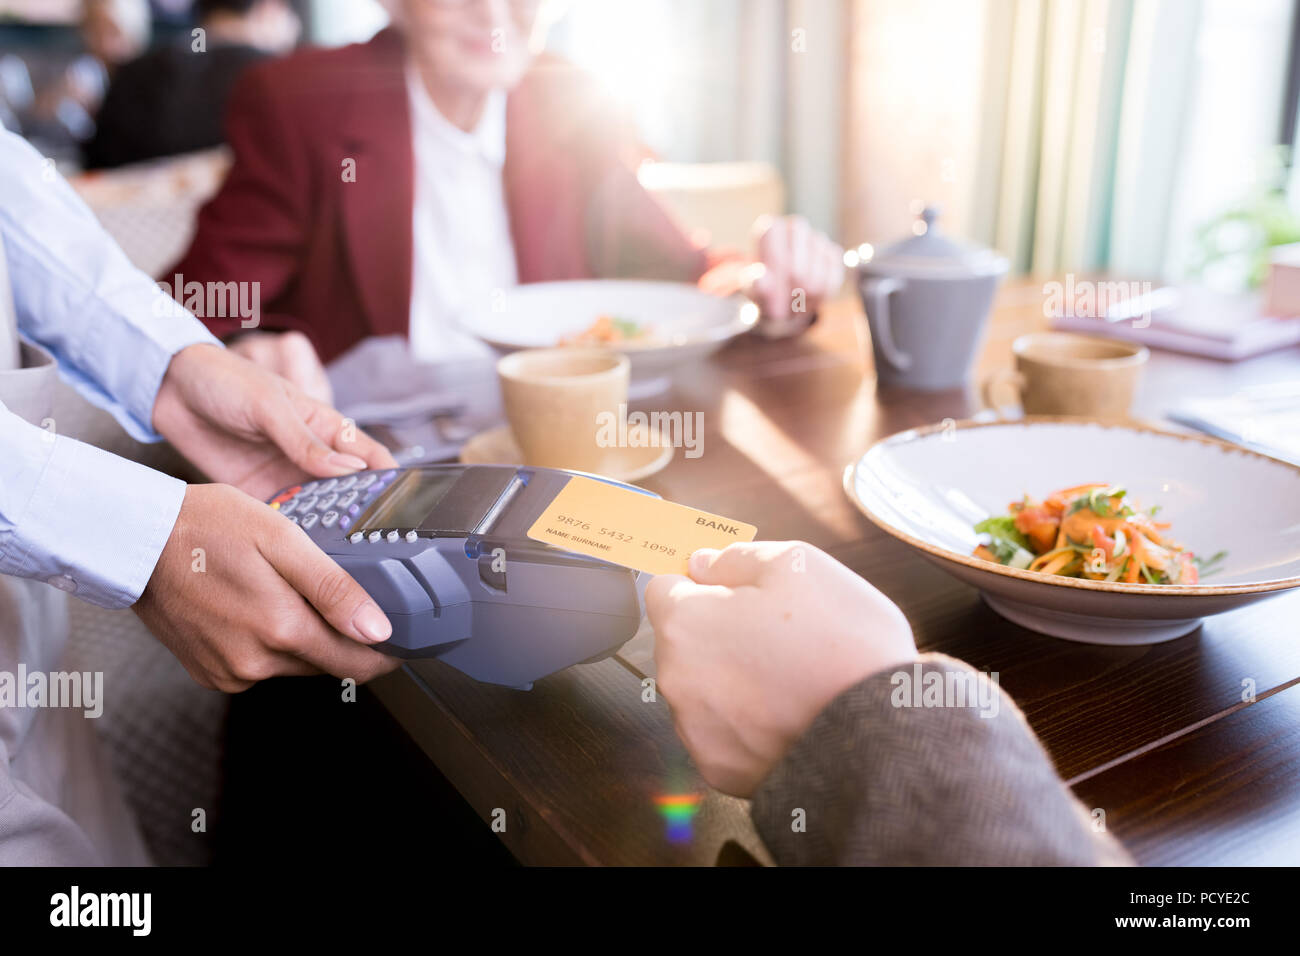 Man paying with credit card - Stock Image